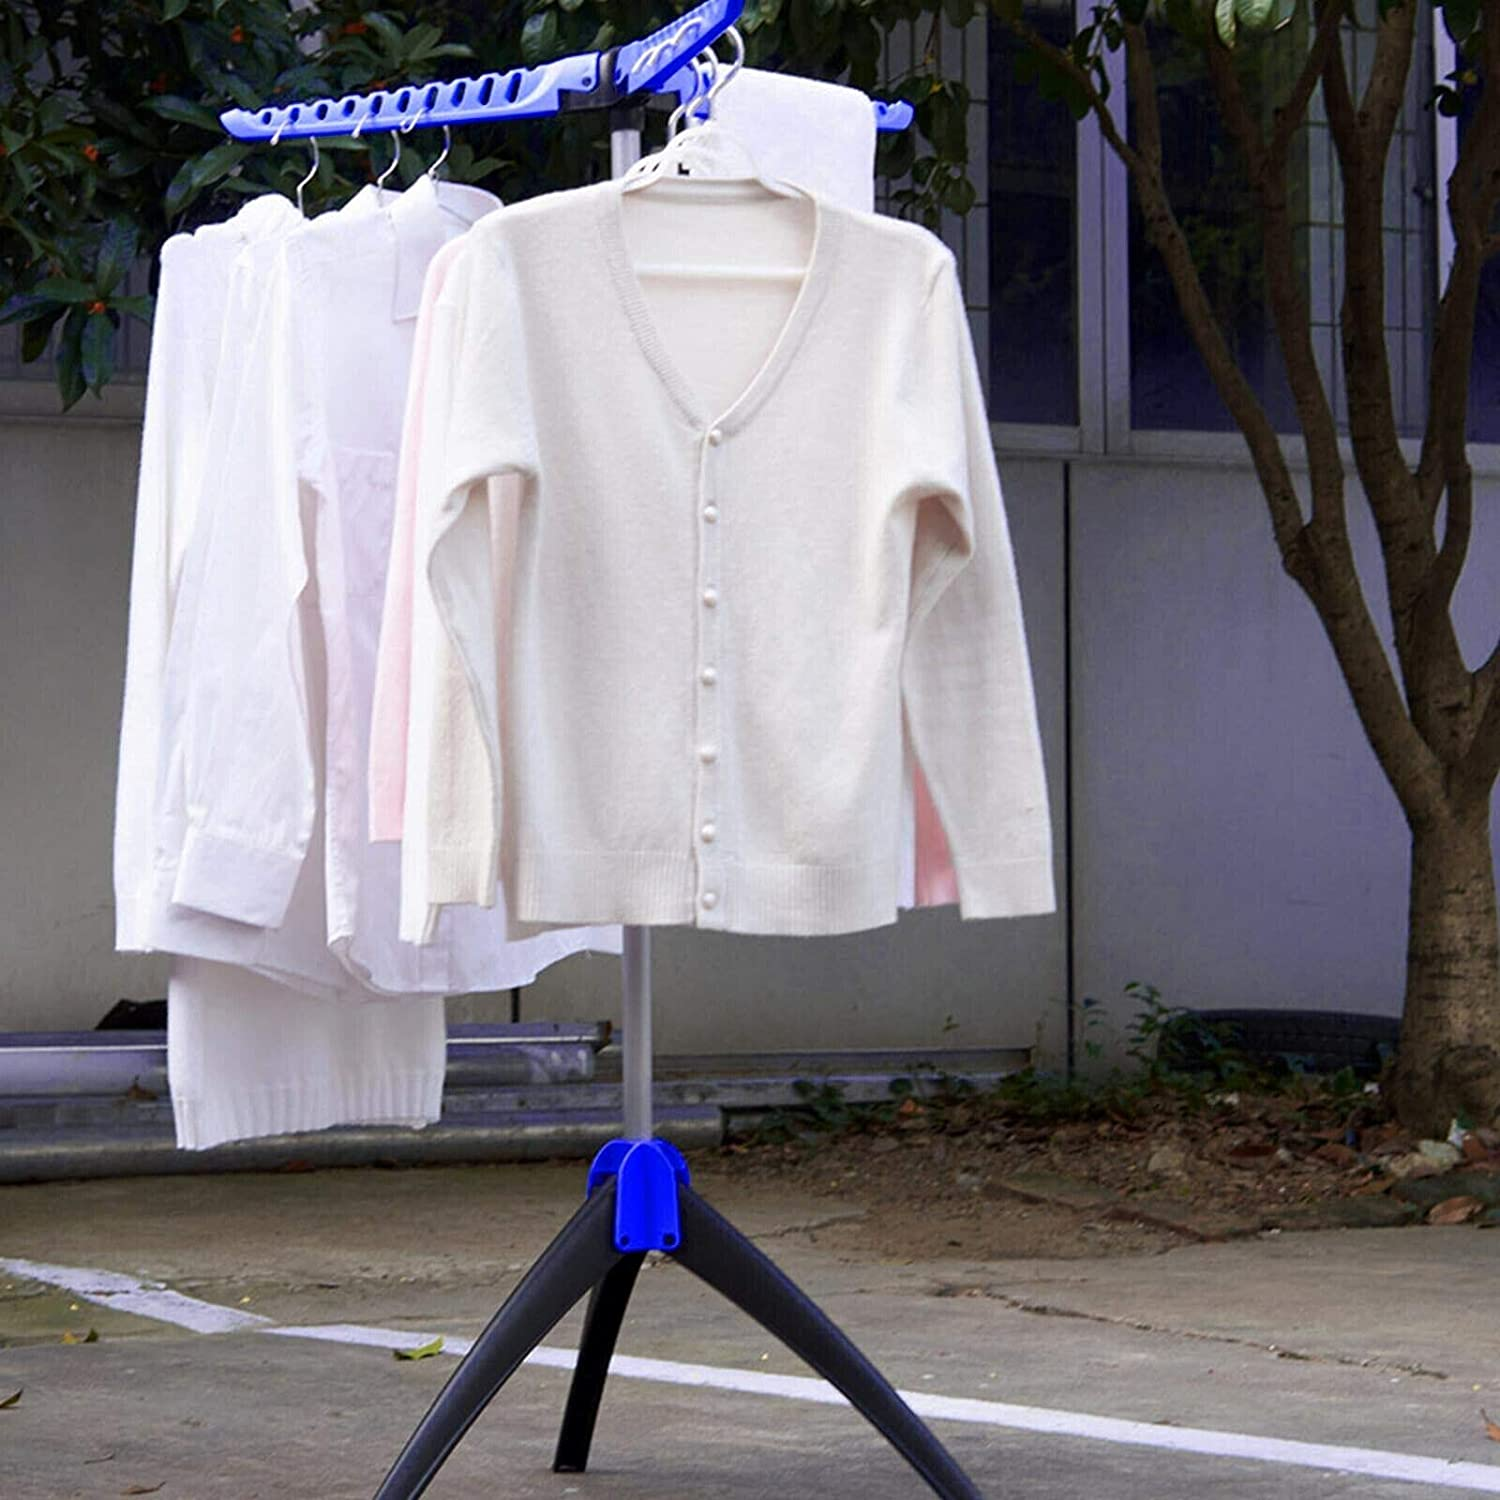 Foldable Clothes Airer 3 Arms Tripod Horse Drying Rack Laundry Hanging Garment